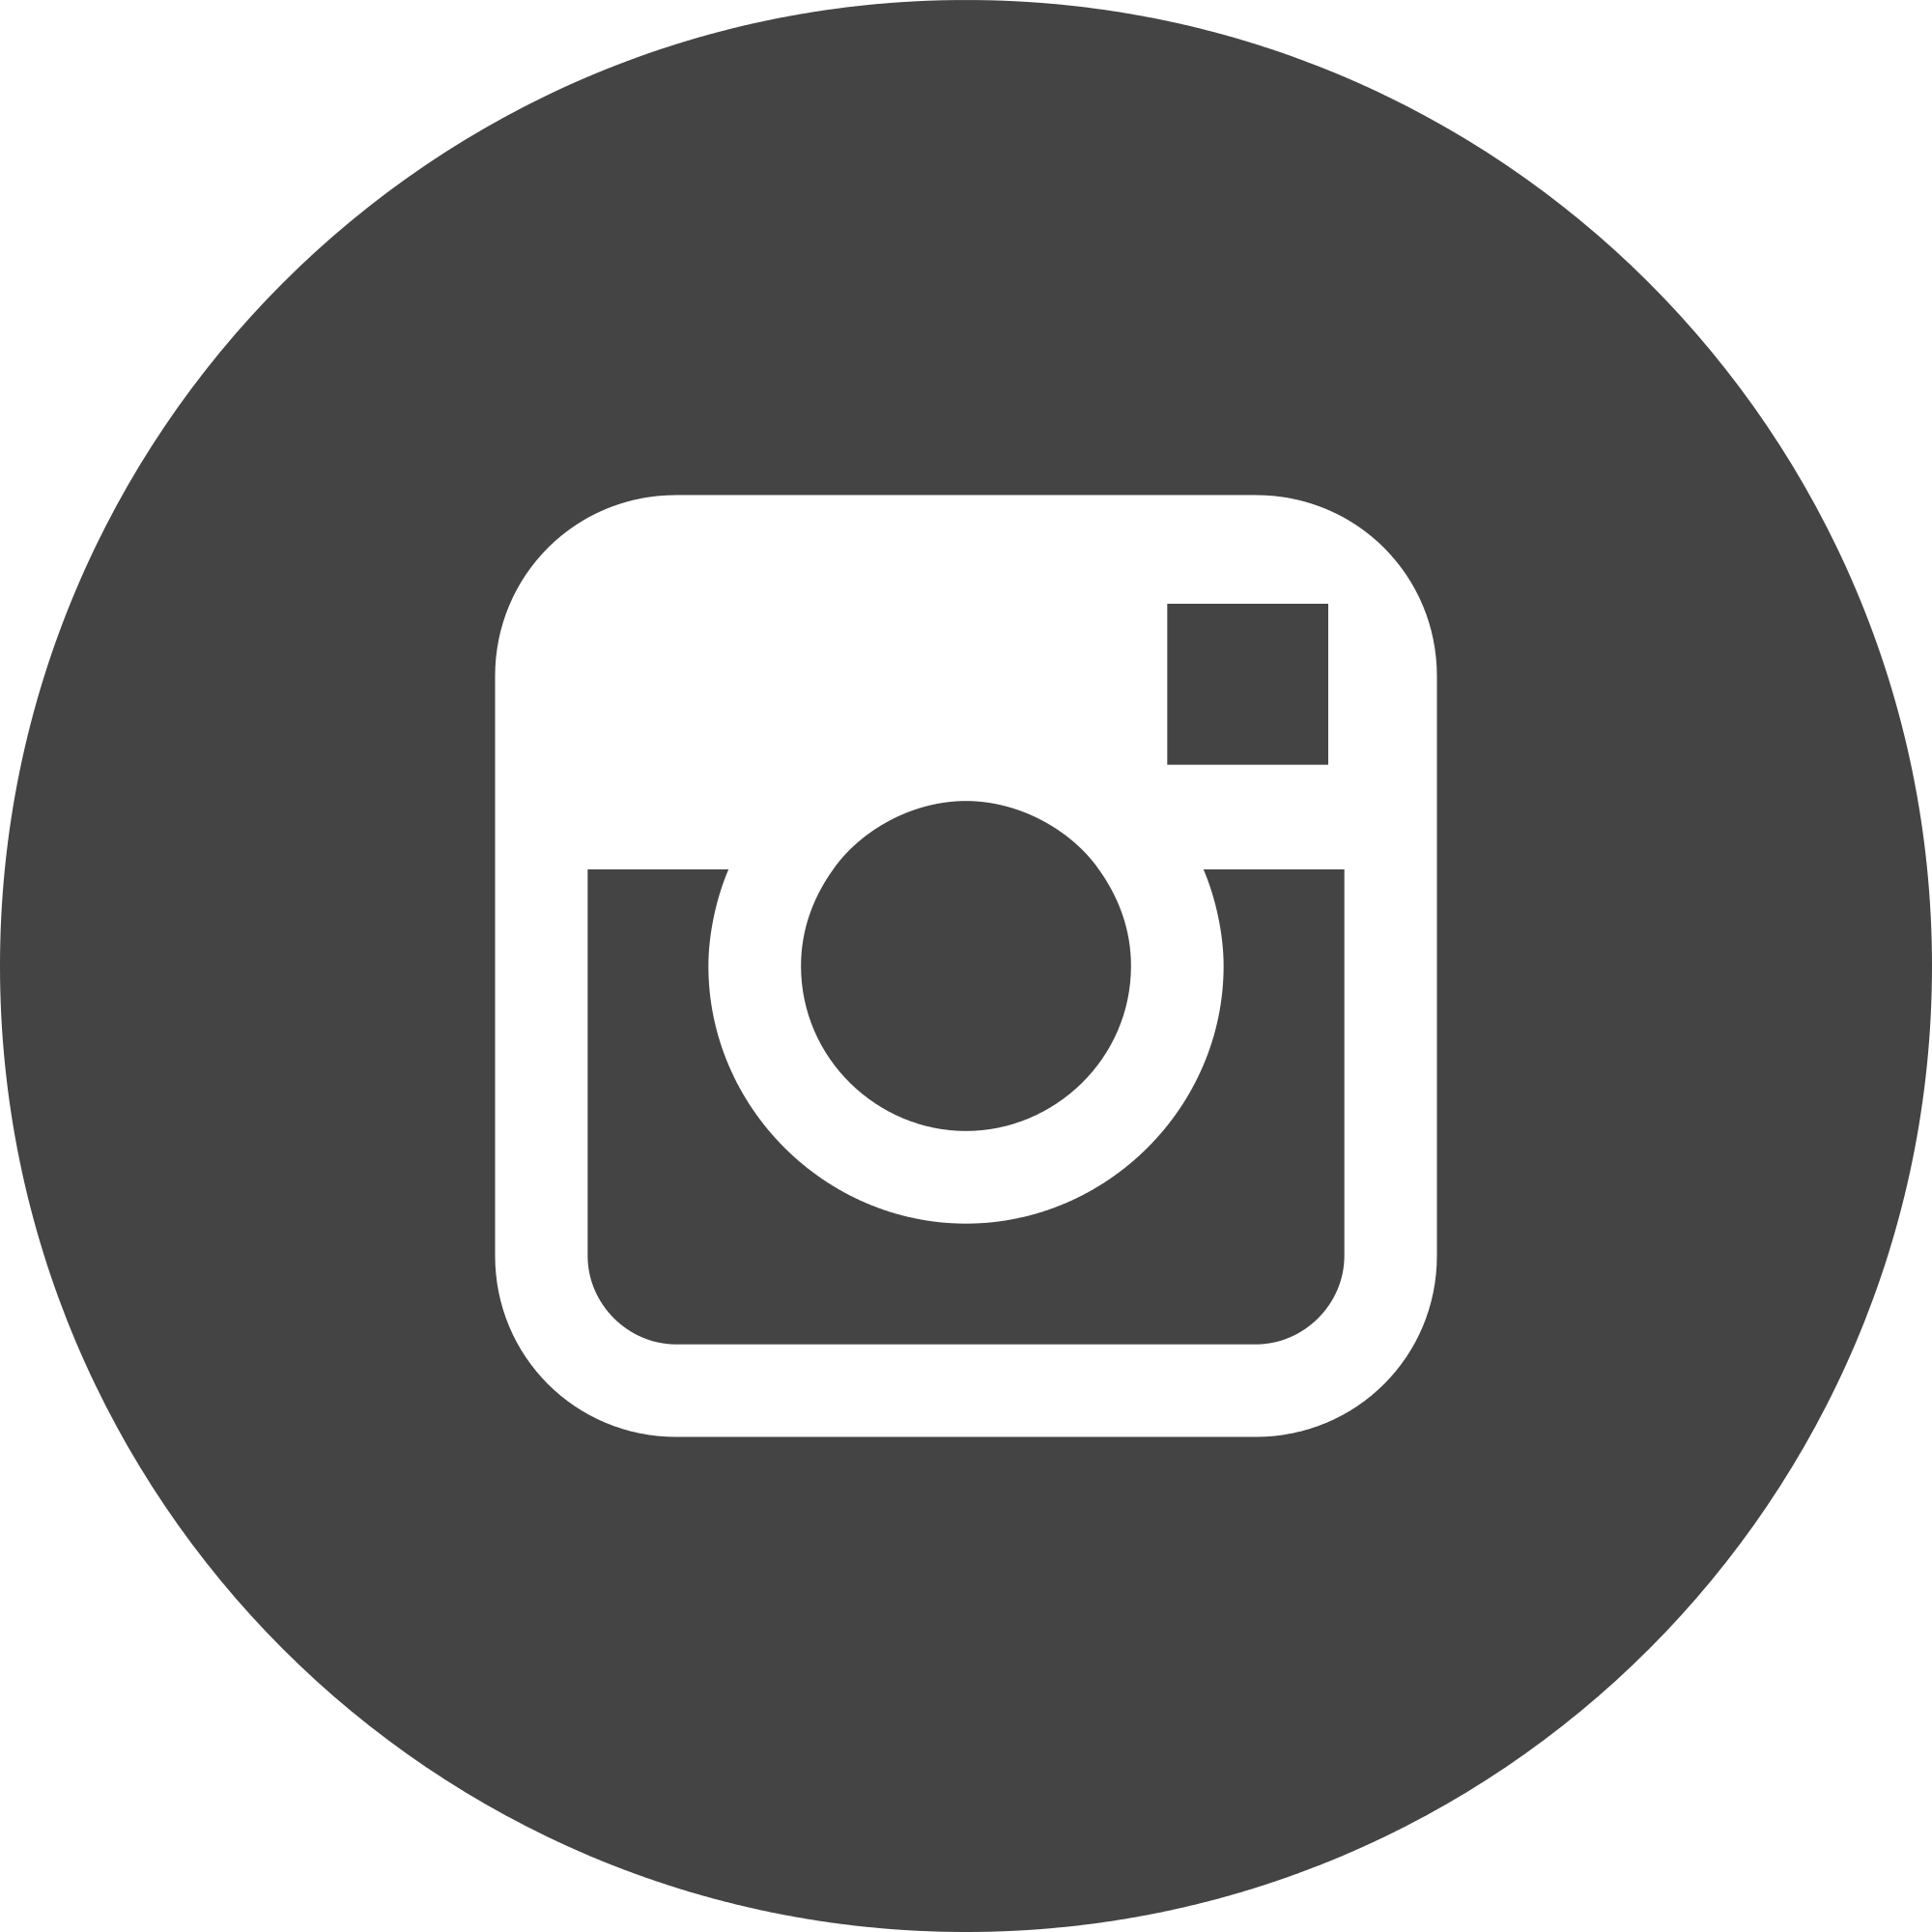 Instagram circle logo png. File svg wikimedia commons